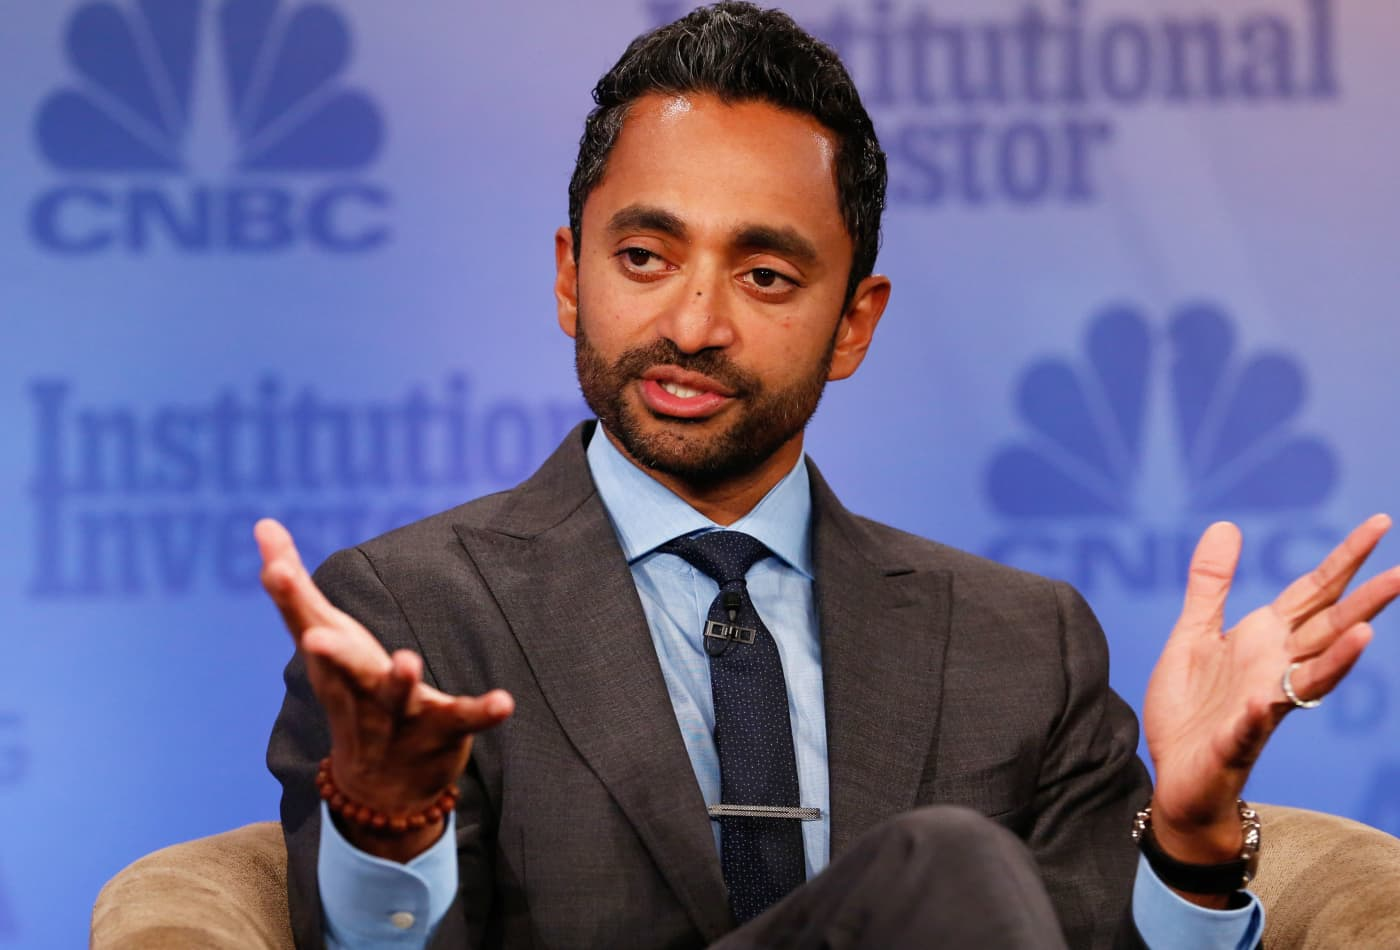 Warren Buffett is 'completely wrong and outdated' on bitcoin, Chamath Palihapitiya says